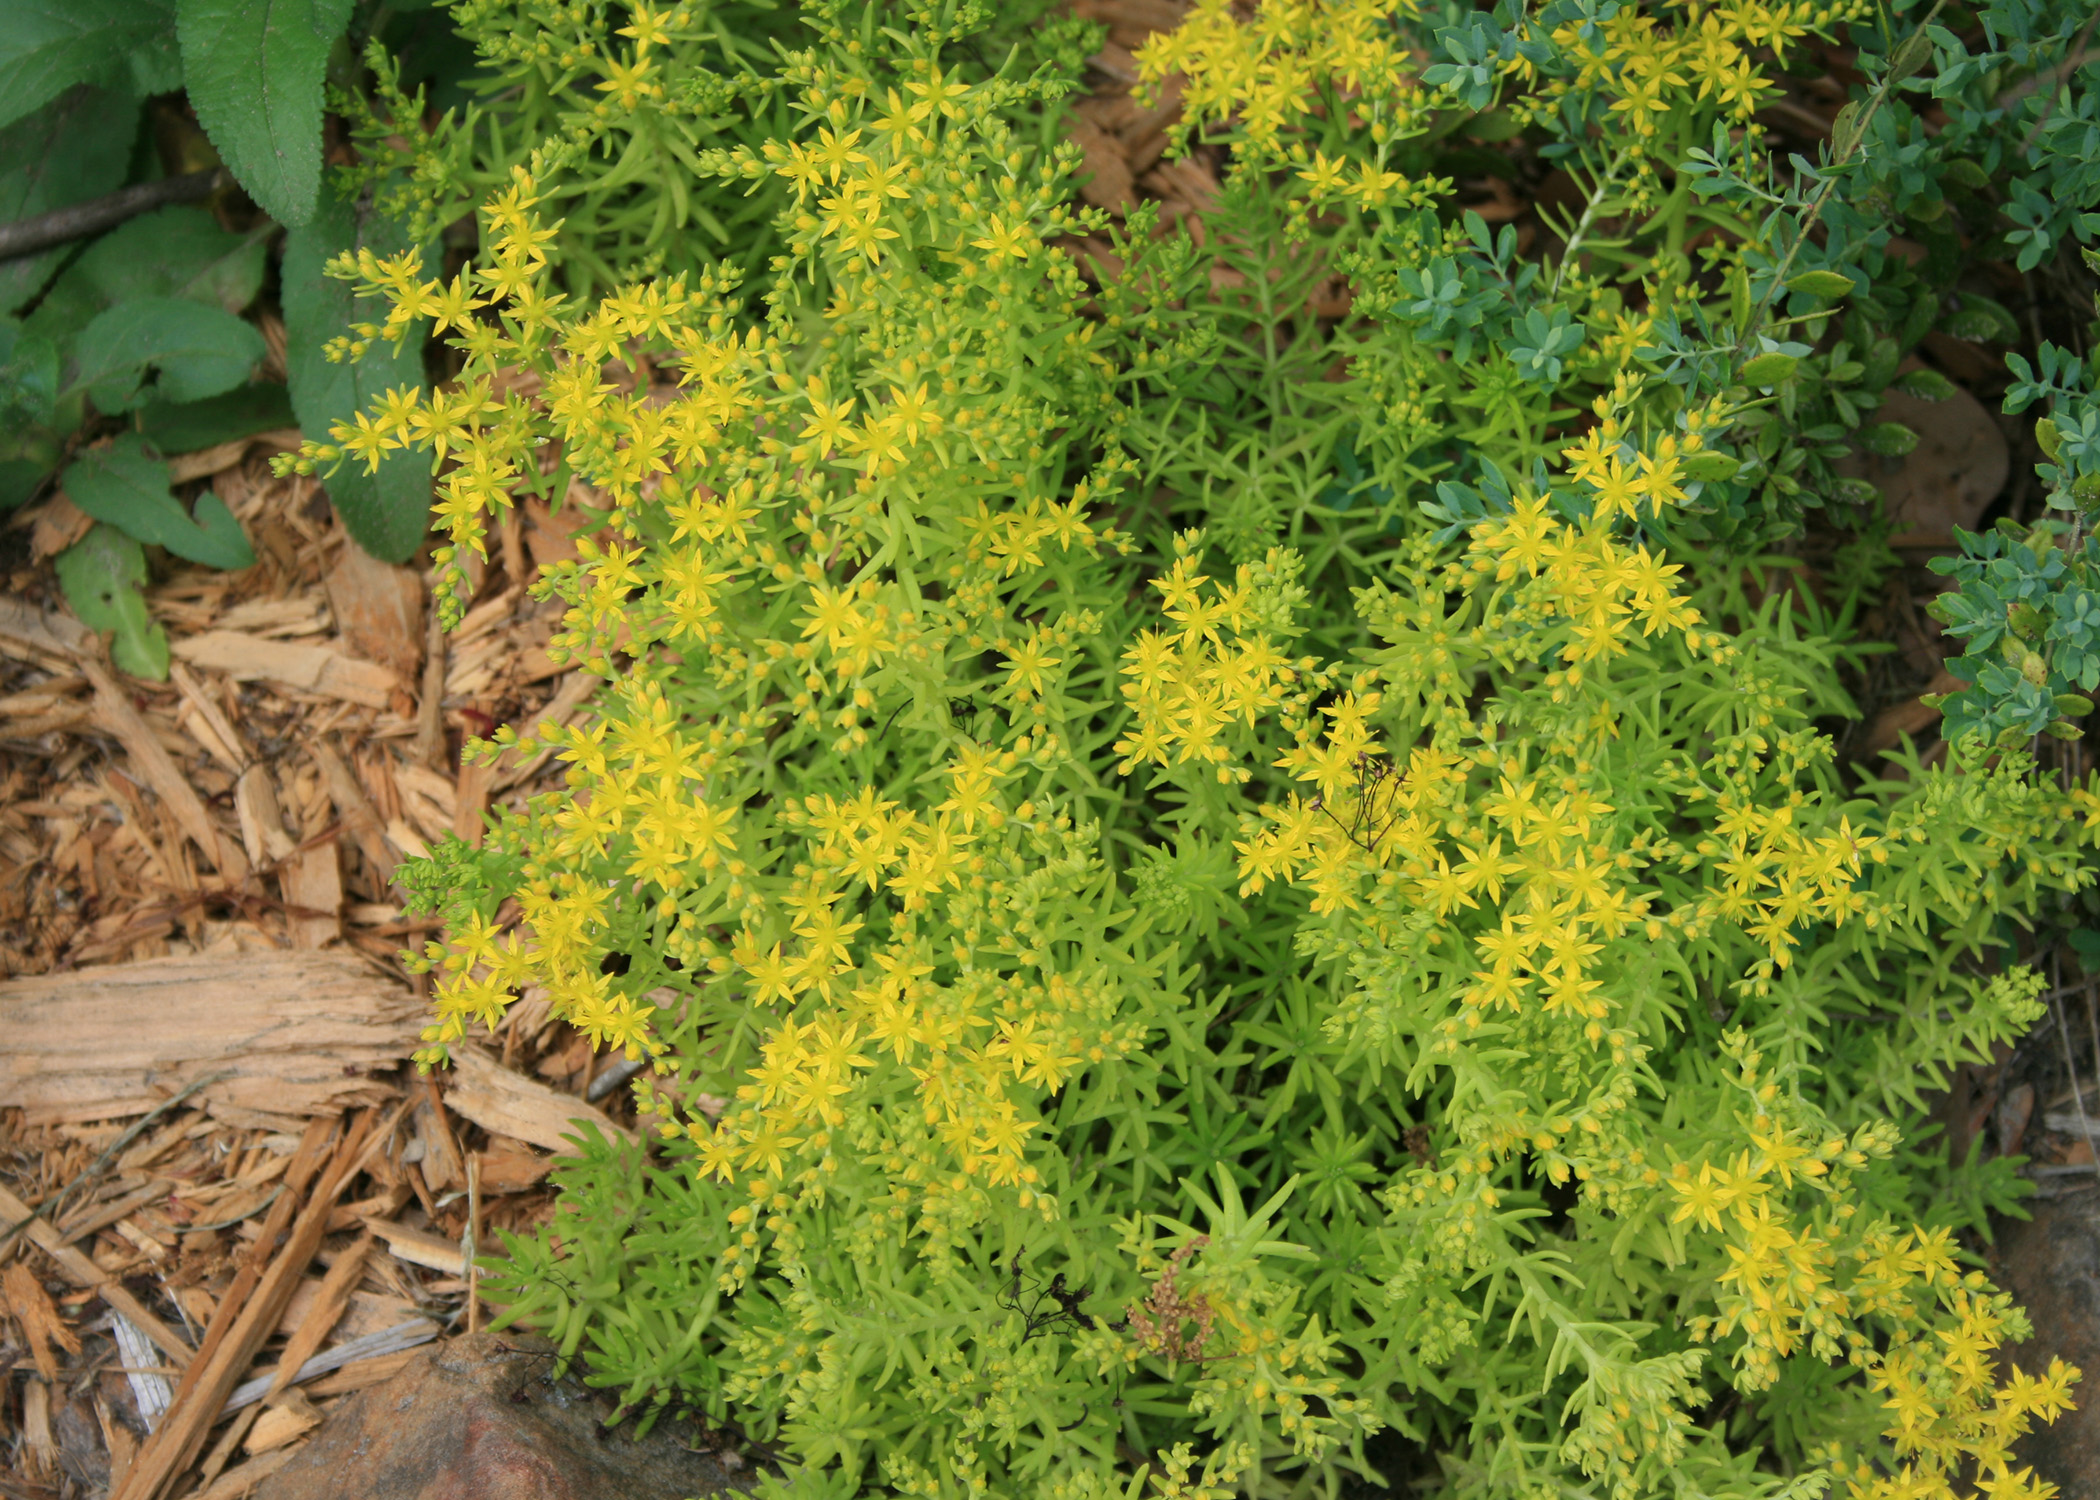 Succulent lemon sedum thrive in sunny locations mississippi state small yellow flowers adorn the top of a green succulent plant mightylinksfo